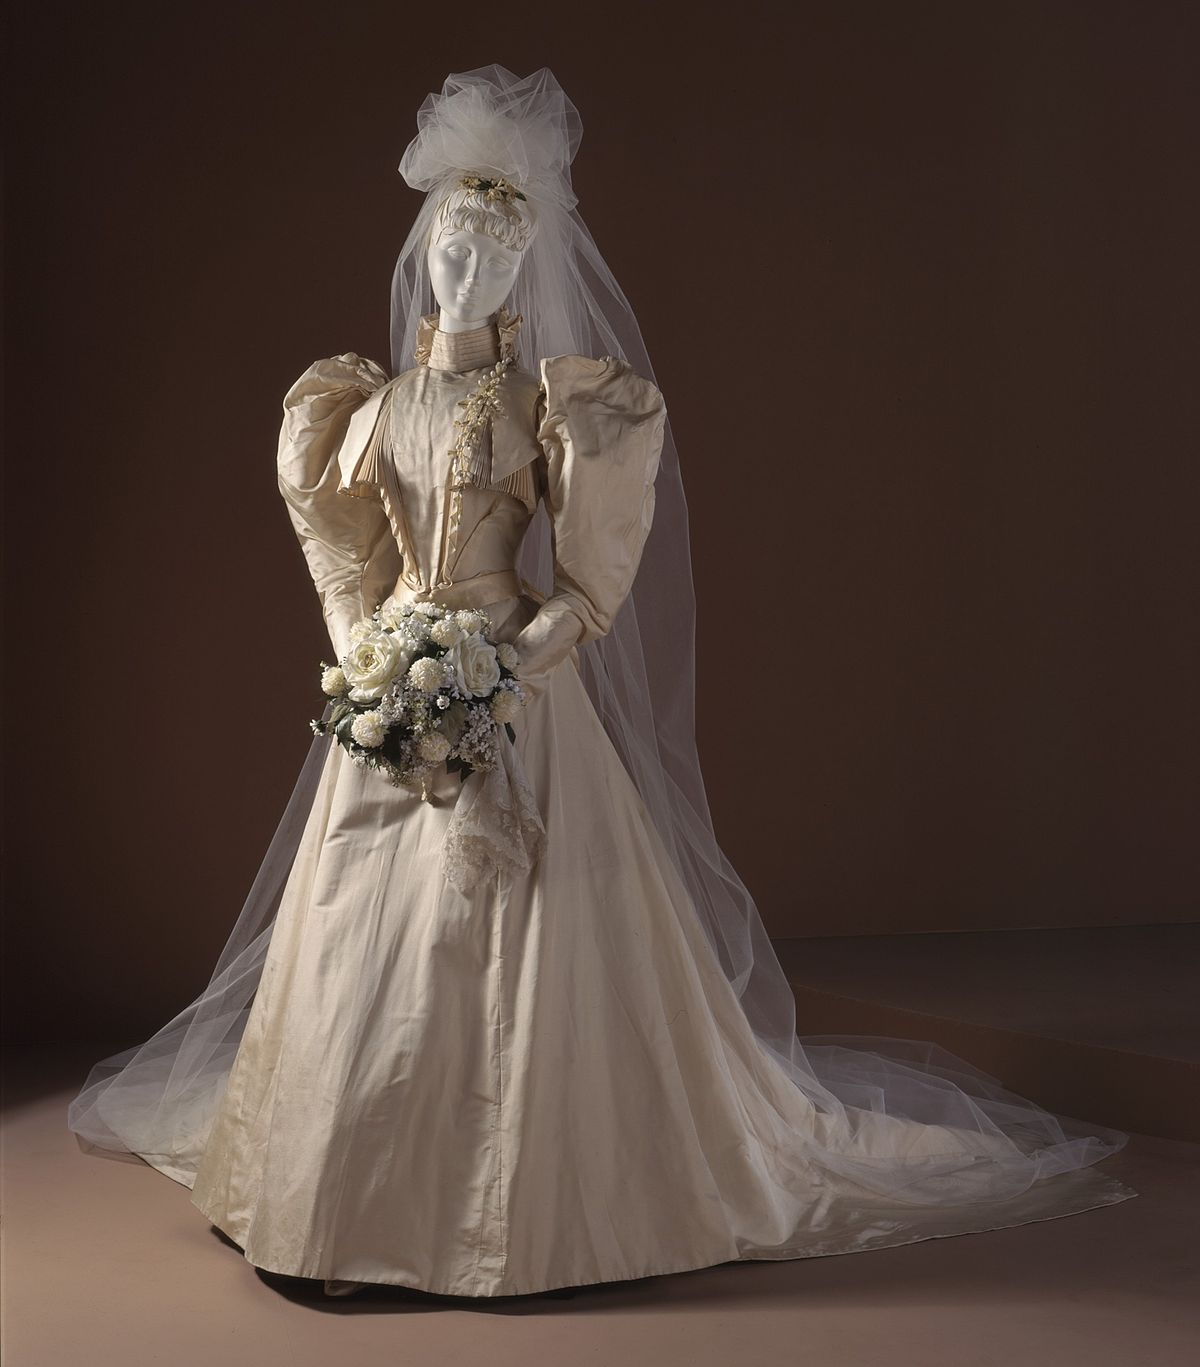 White Wedding Dress Queen Victoria: Wedding Dress